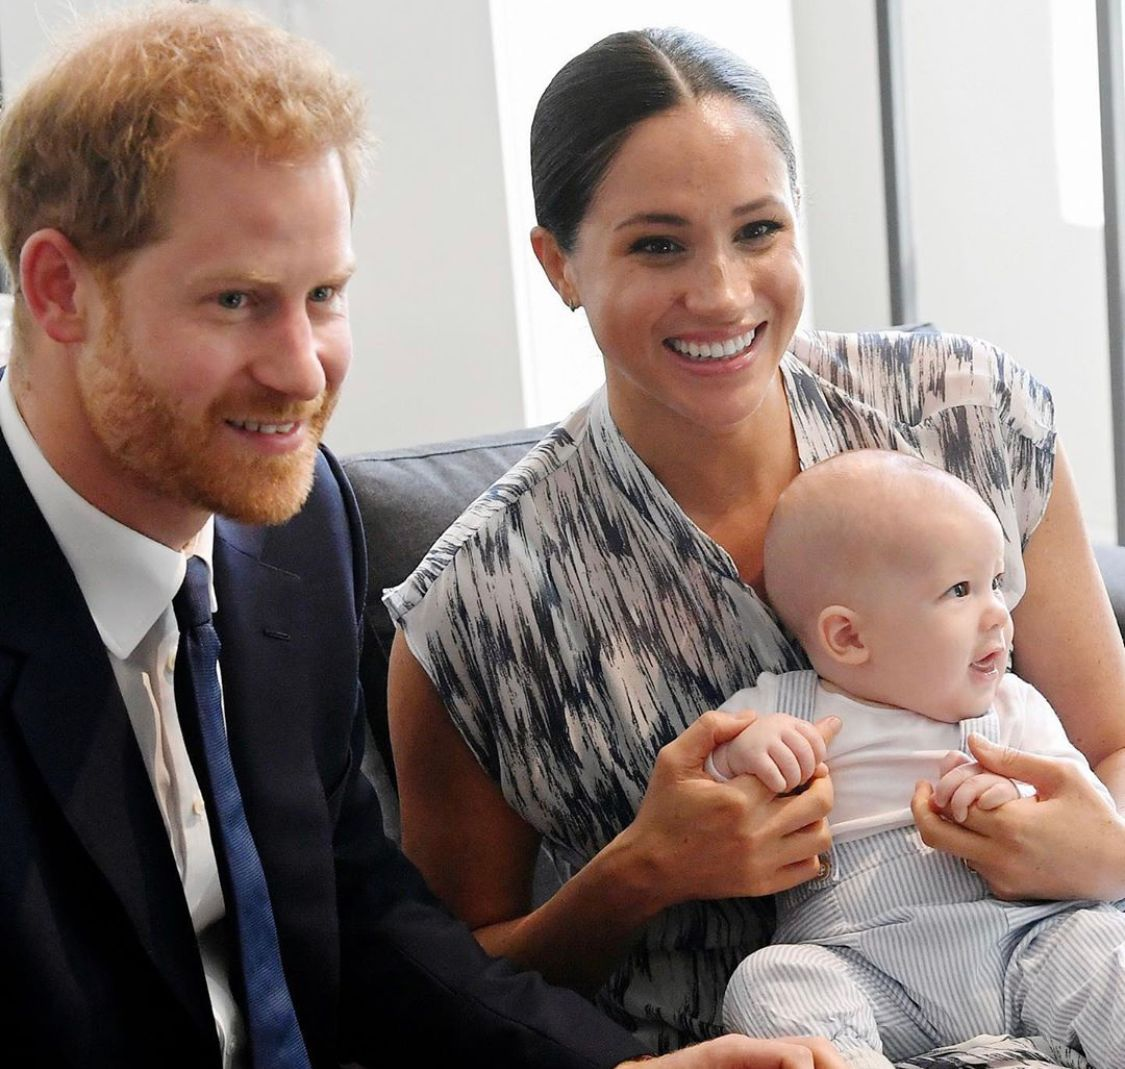 An amazing throwback photo showing Prince Harry, Meghan Markle and baby Archie as an infant. They all look incredible.